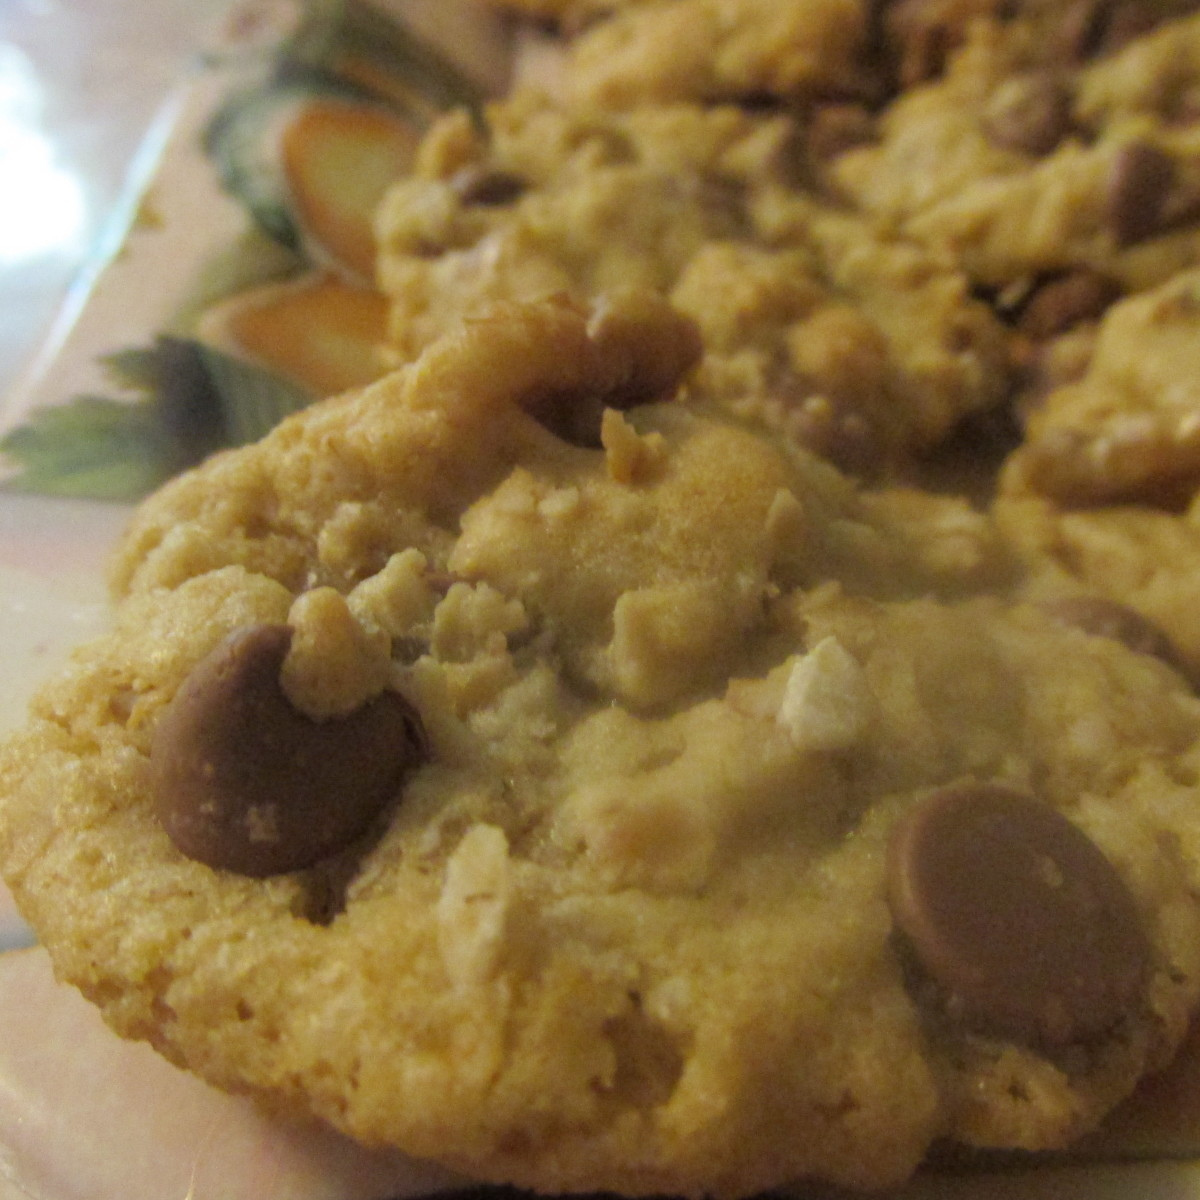 Chocolate chip oatmeal cookie with walnuts, fresh out of the oven